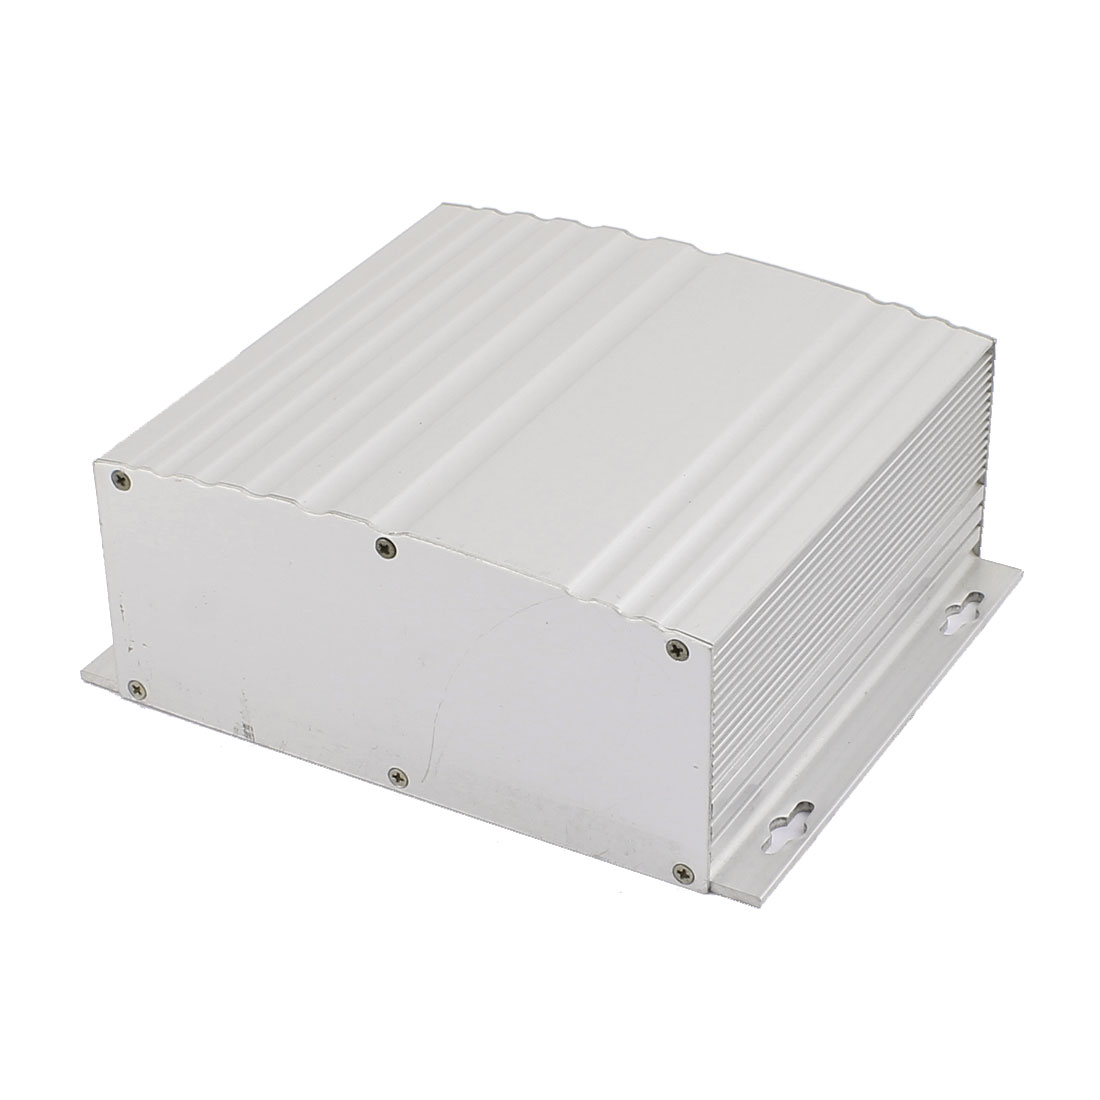 158 x 150 x 73mm Multi-purpose Electronic Extruded Aluminum Enclosure Silver Tone